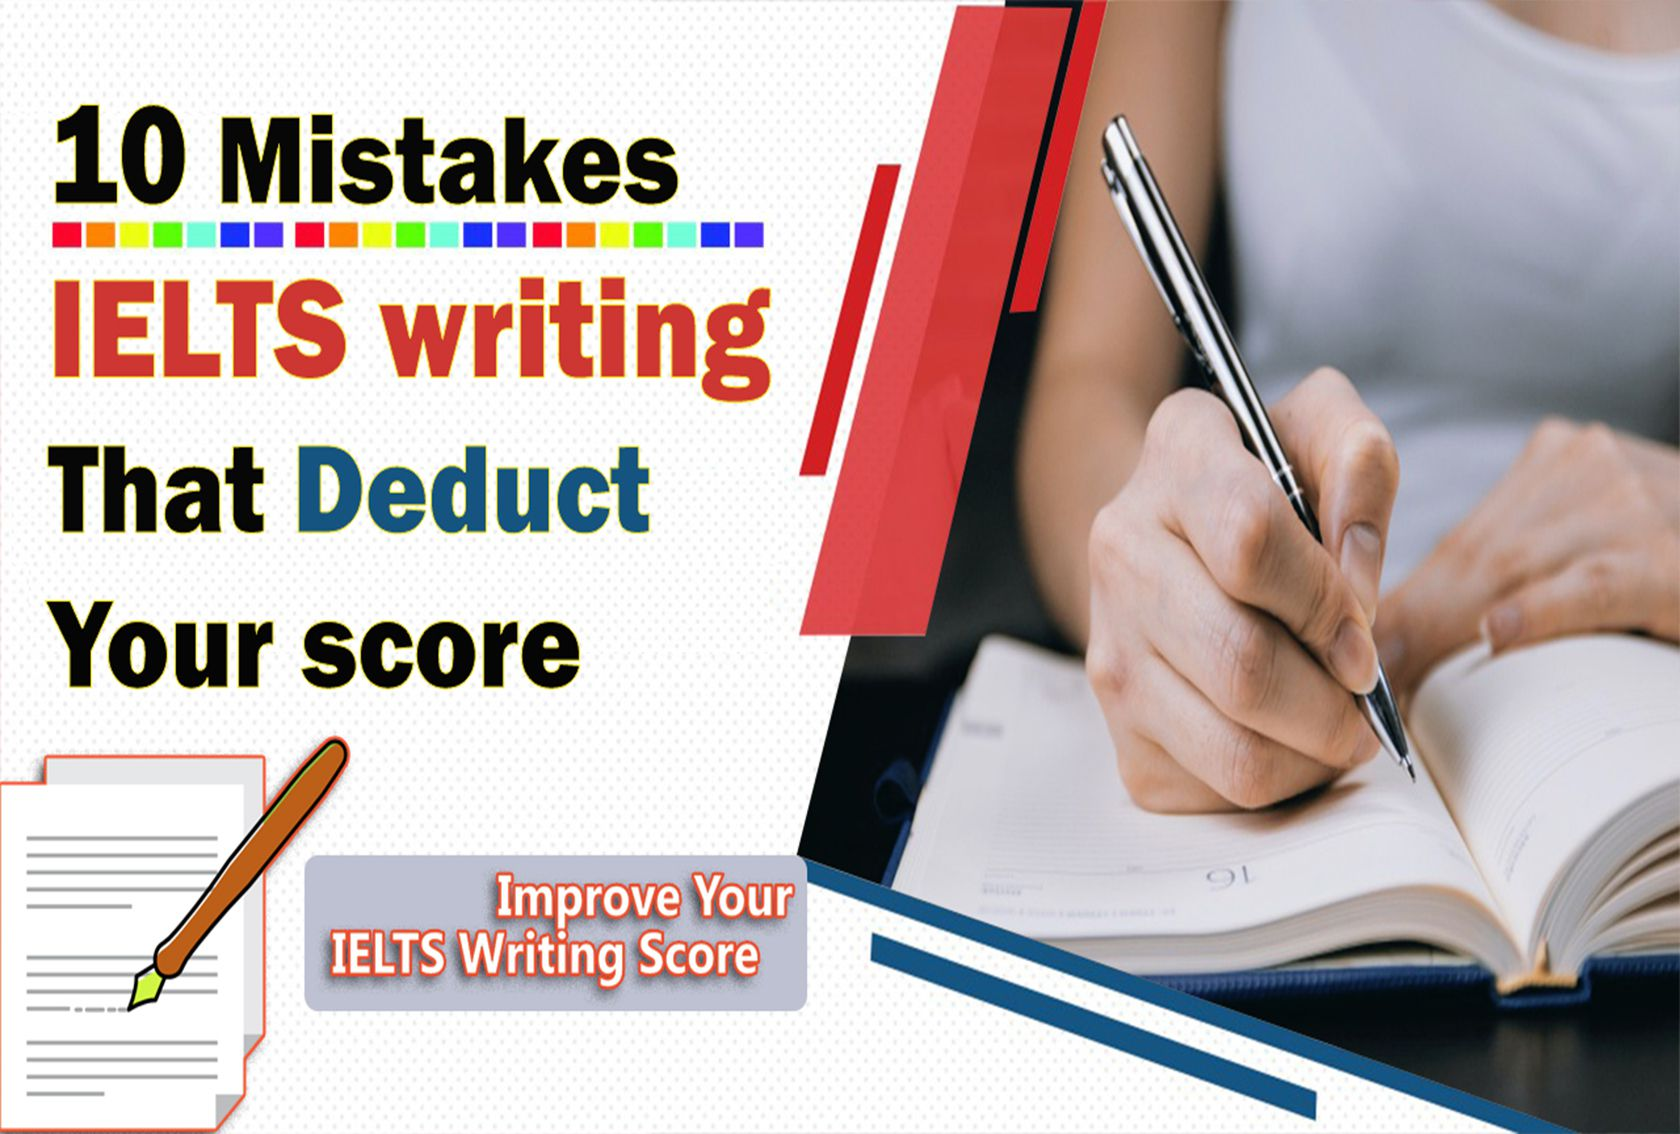 10 IELTS writing mistakes that deduct your score